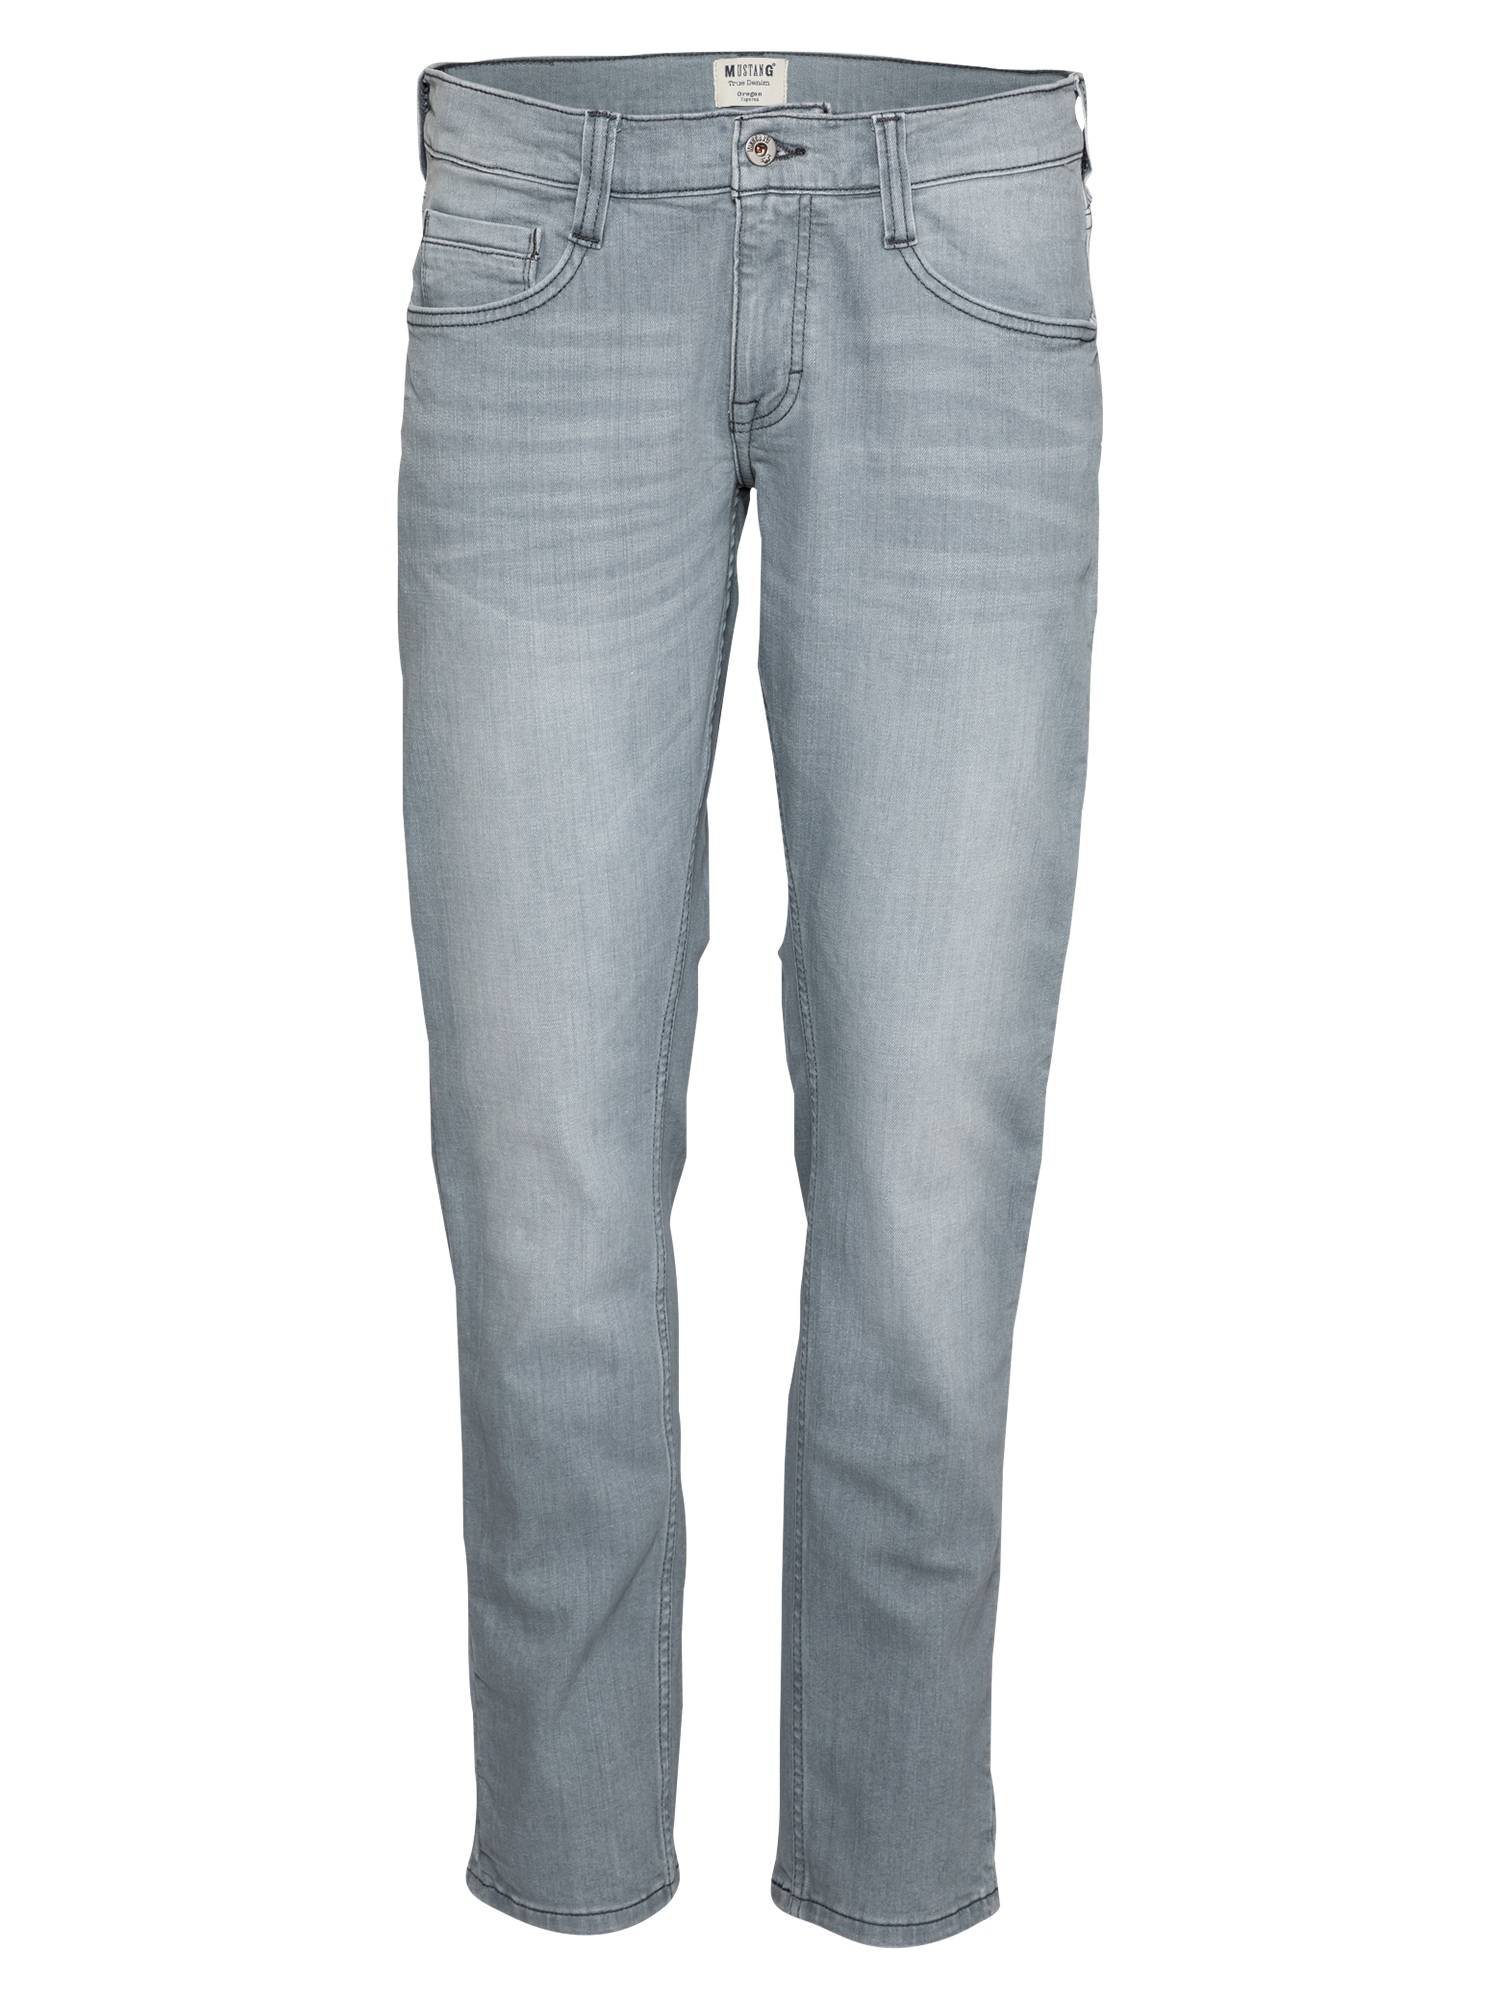 MUSTANG Jean 'Oregon'  - Gris - Taille: 35/34 - male